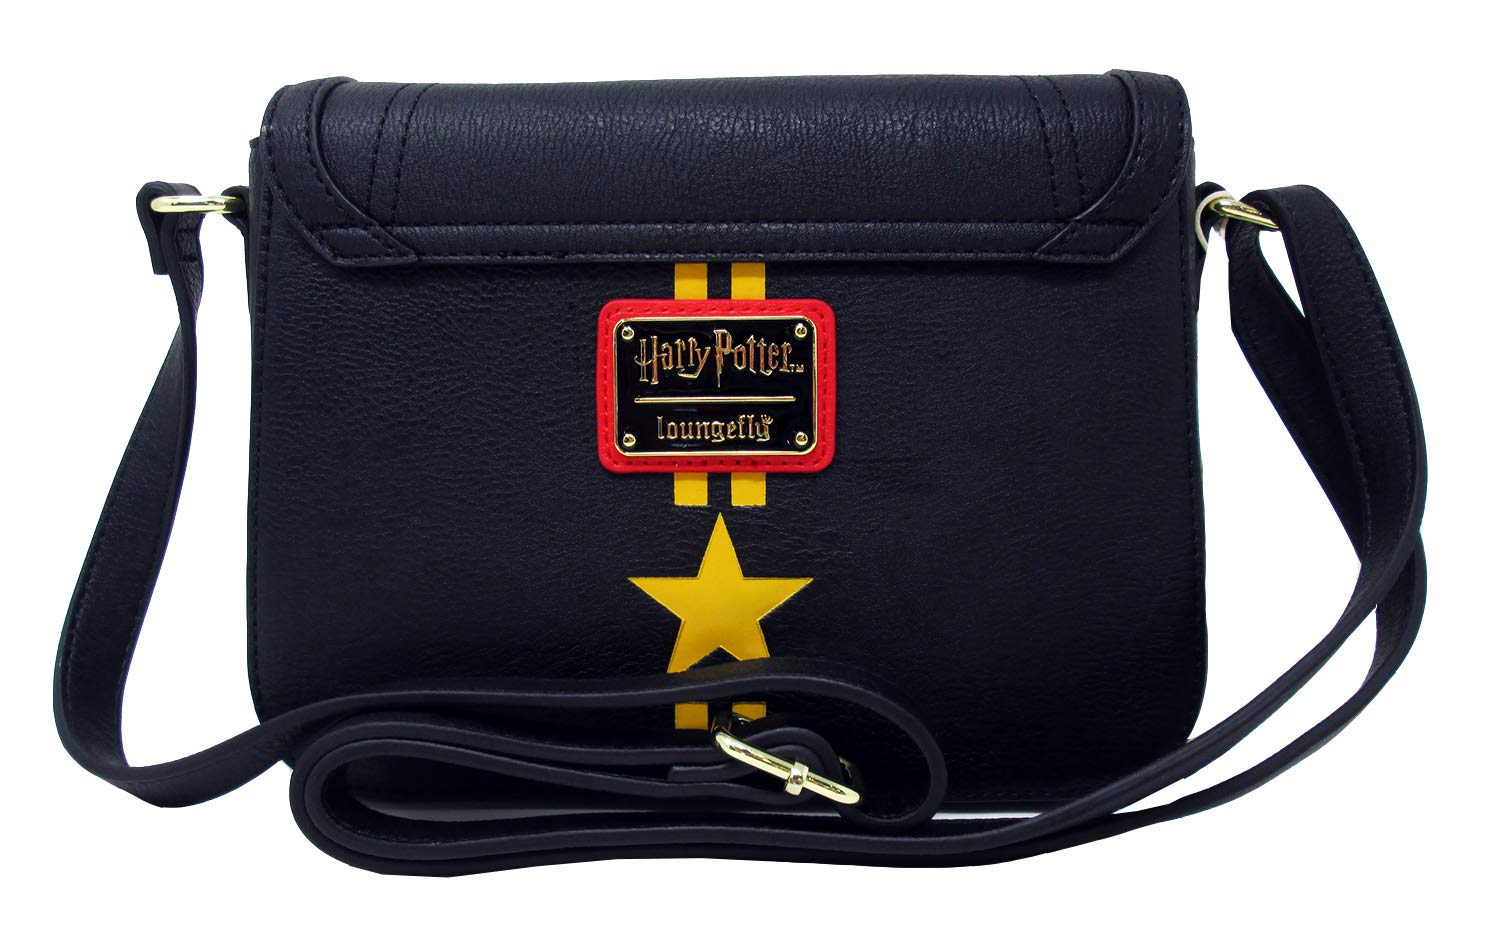 Loungefly x Harry Potter Triwizard Tournament Crossbody (One Size, Multicolored) - wiihuu